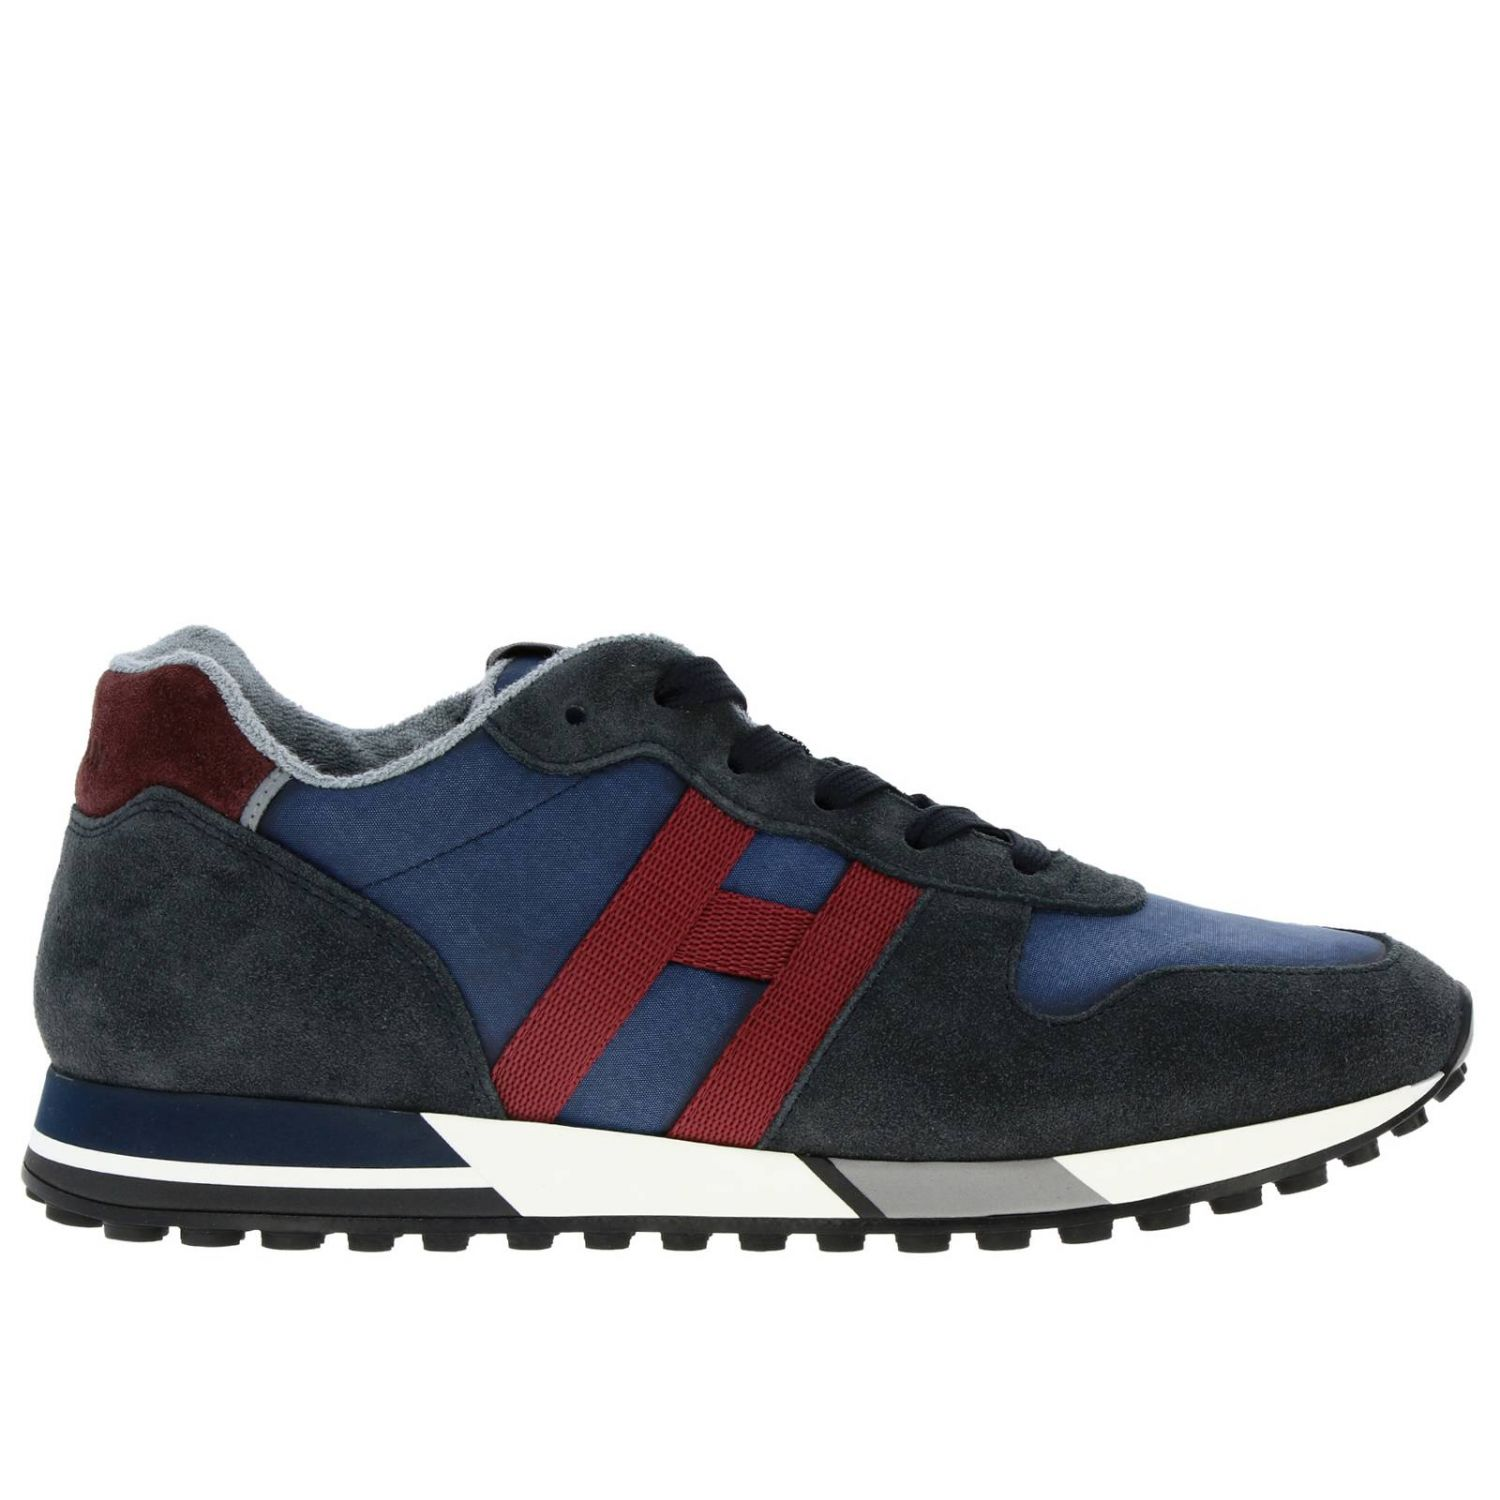 Sneakers 383 split leather and fabric Hogan with monochrome H blue 1